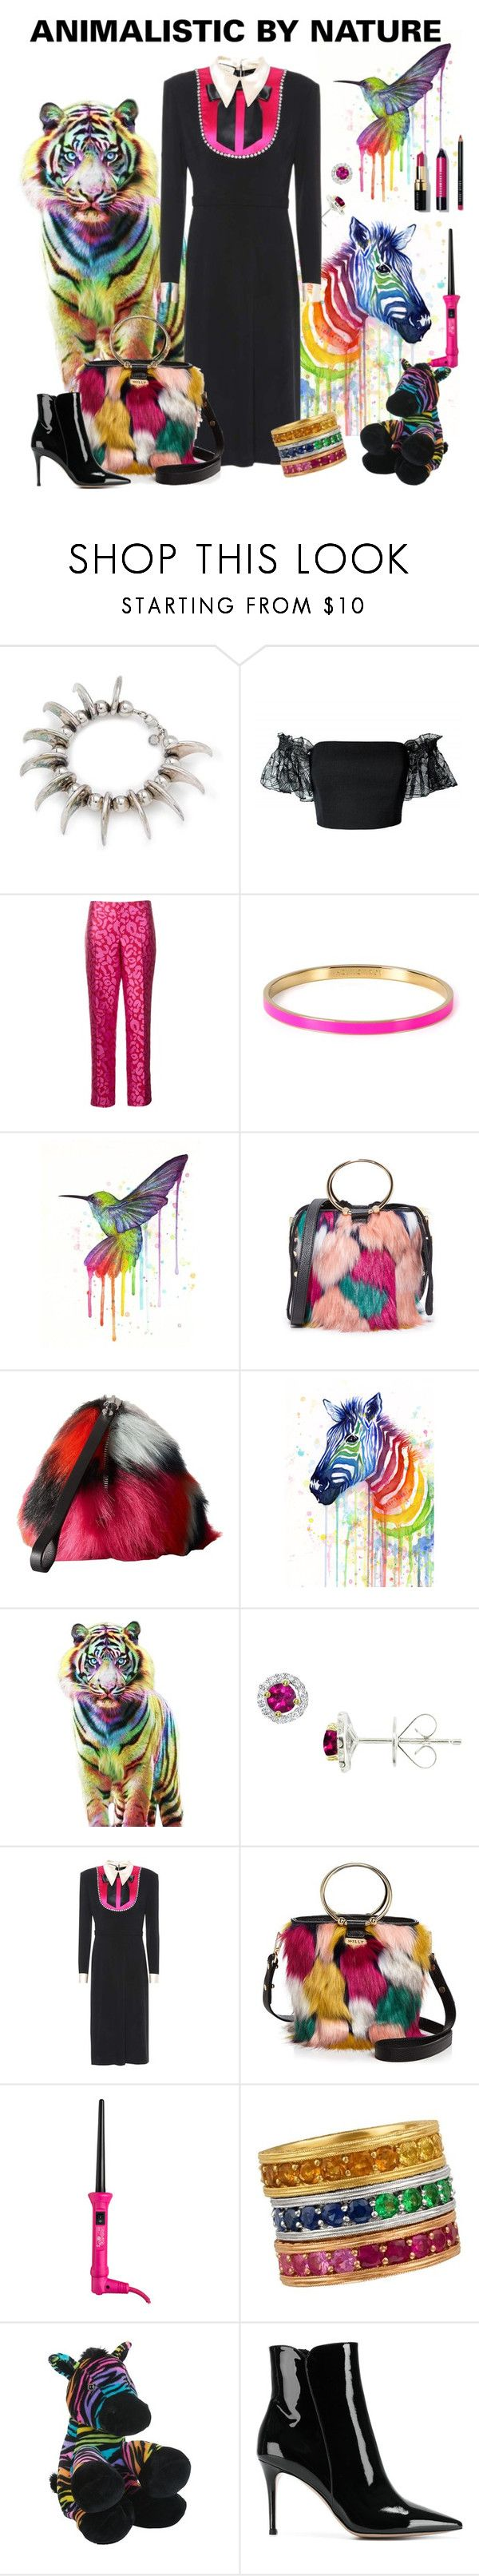 """""""Animalistic By Nature"""" by nicole-leblanc-1 ❤ liked on Polyvore featuring Tom Binns, Plakinger, Oscar de la Renta, Kate Spade, Samsung, Milly, McQ by Alexander McQueen, EWA, Gucci and Royale"""